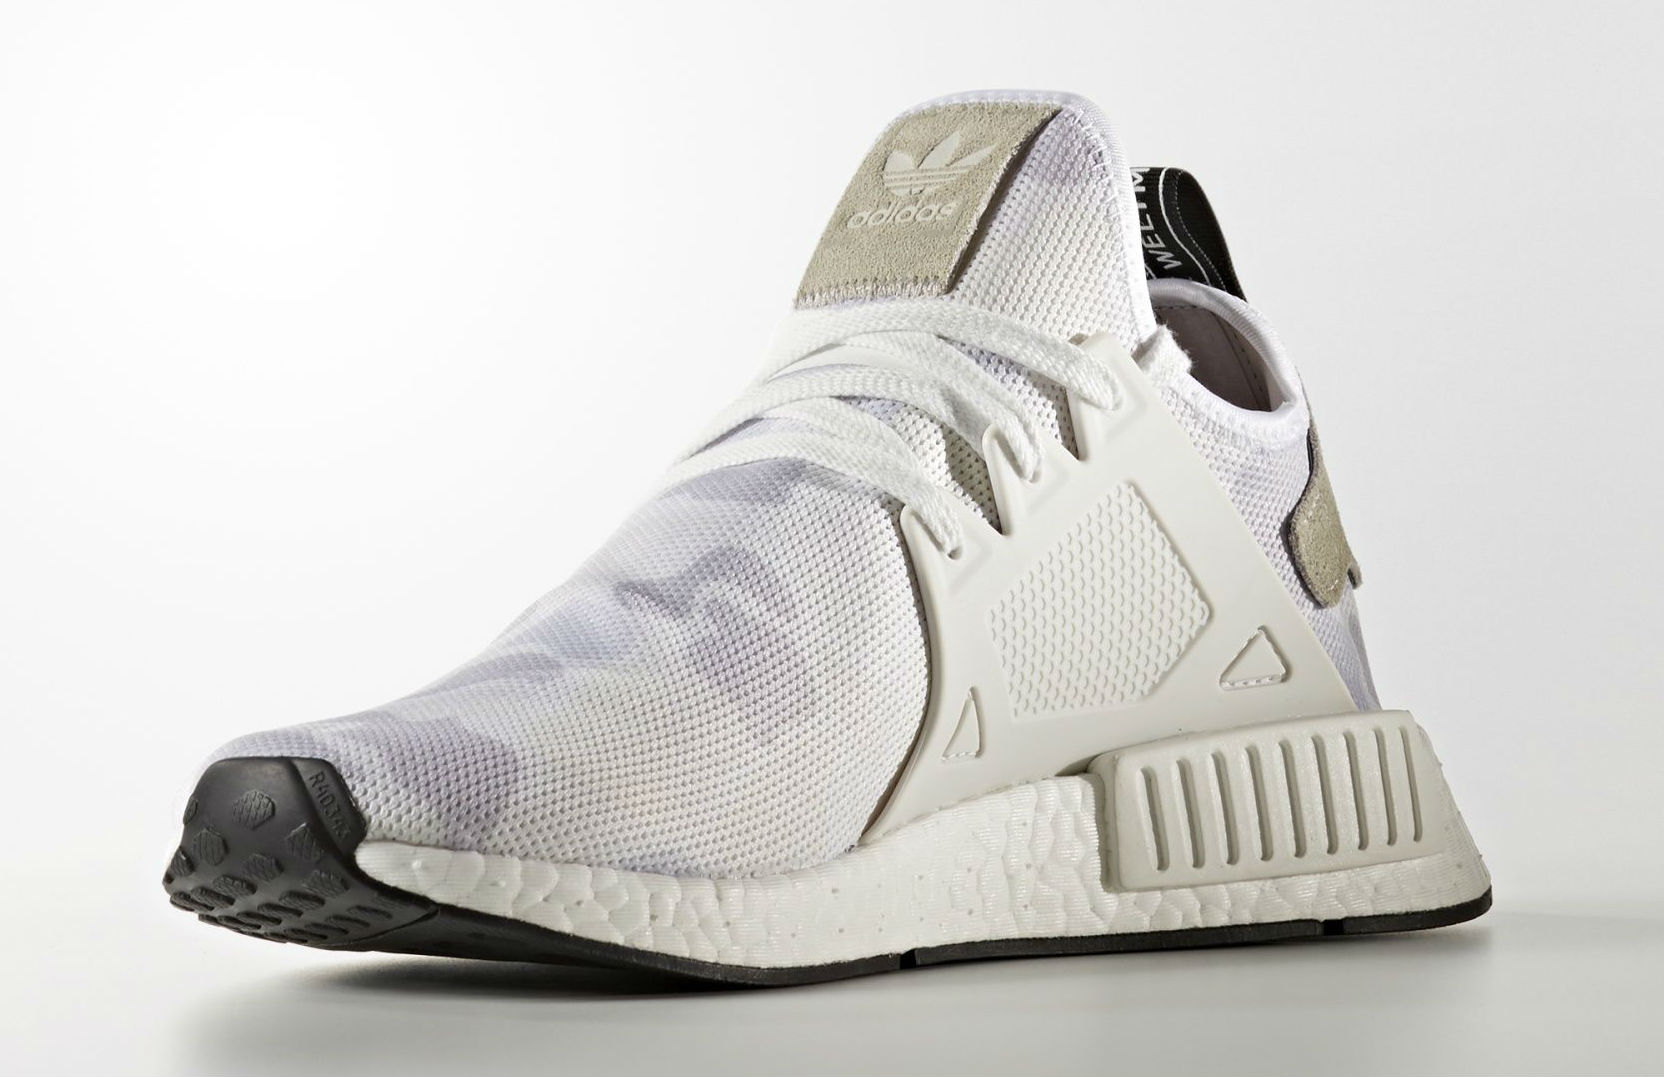 adidas NMD Xr1 PK Primeknit Maroon Burgundy Womens Sizes 5.0